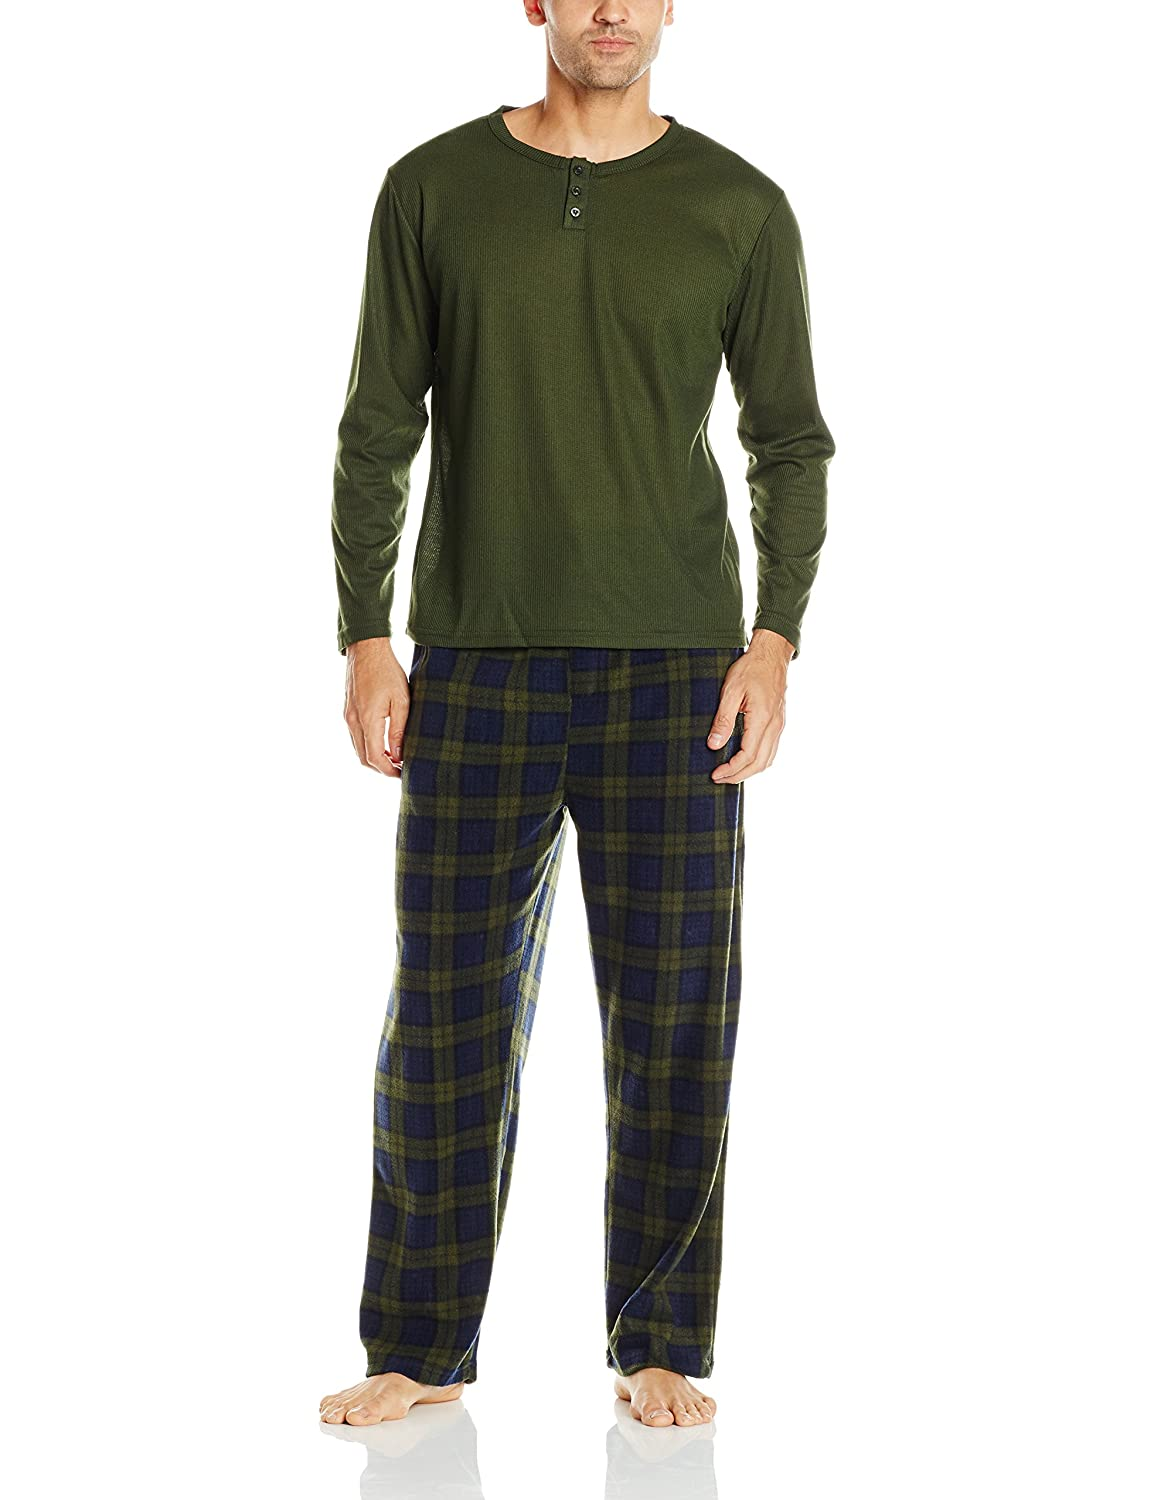 Essentials by Seven Apparel Men's Long-Sleeve Top and Fleece Bottom Pajama Set 13049